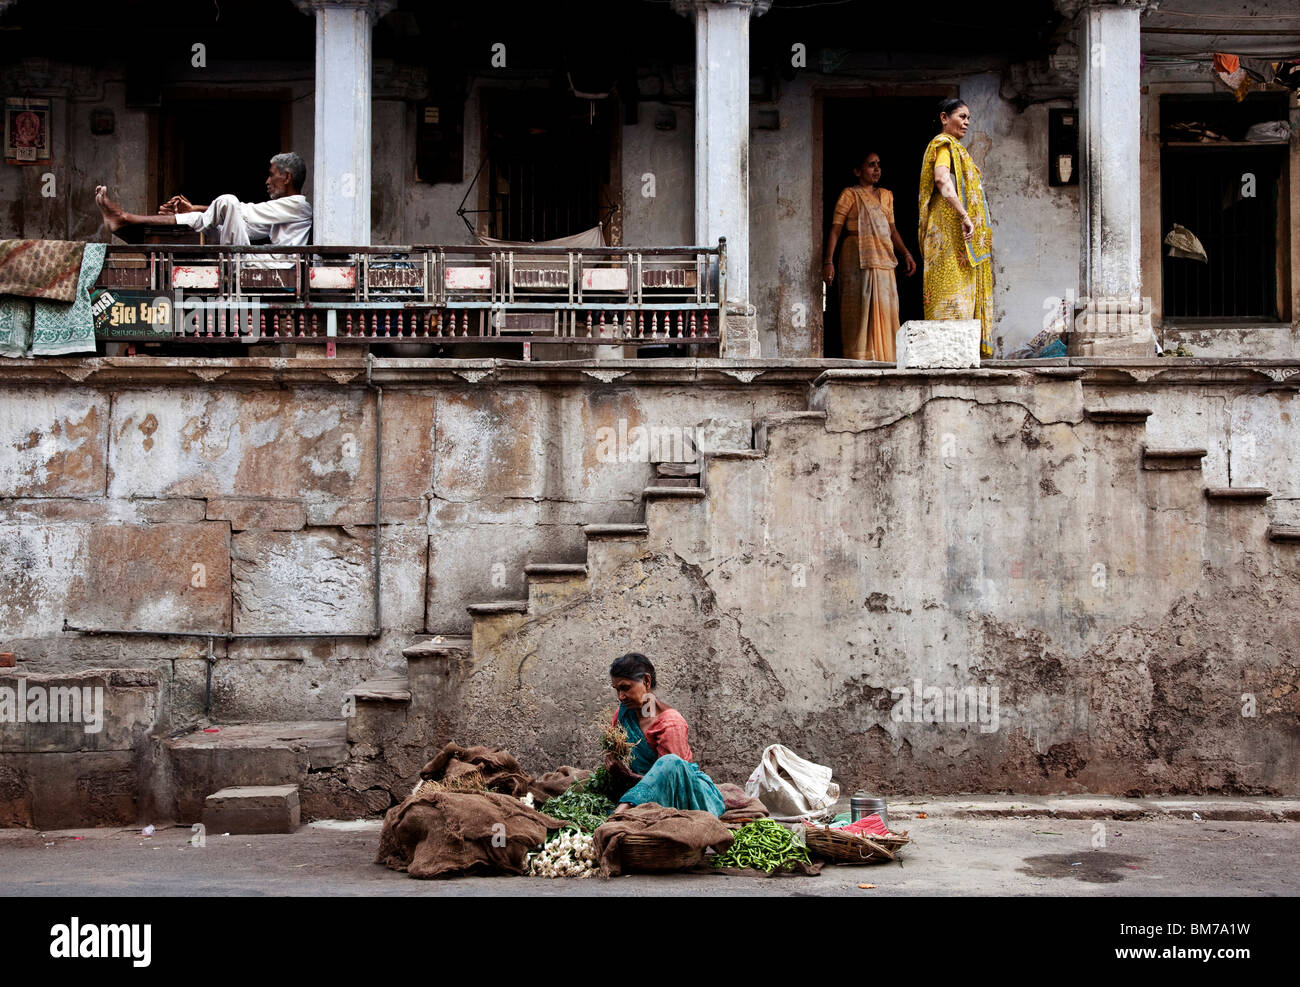 The old town in Ahmedabad, Gujurat India - Stock Image